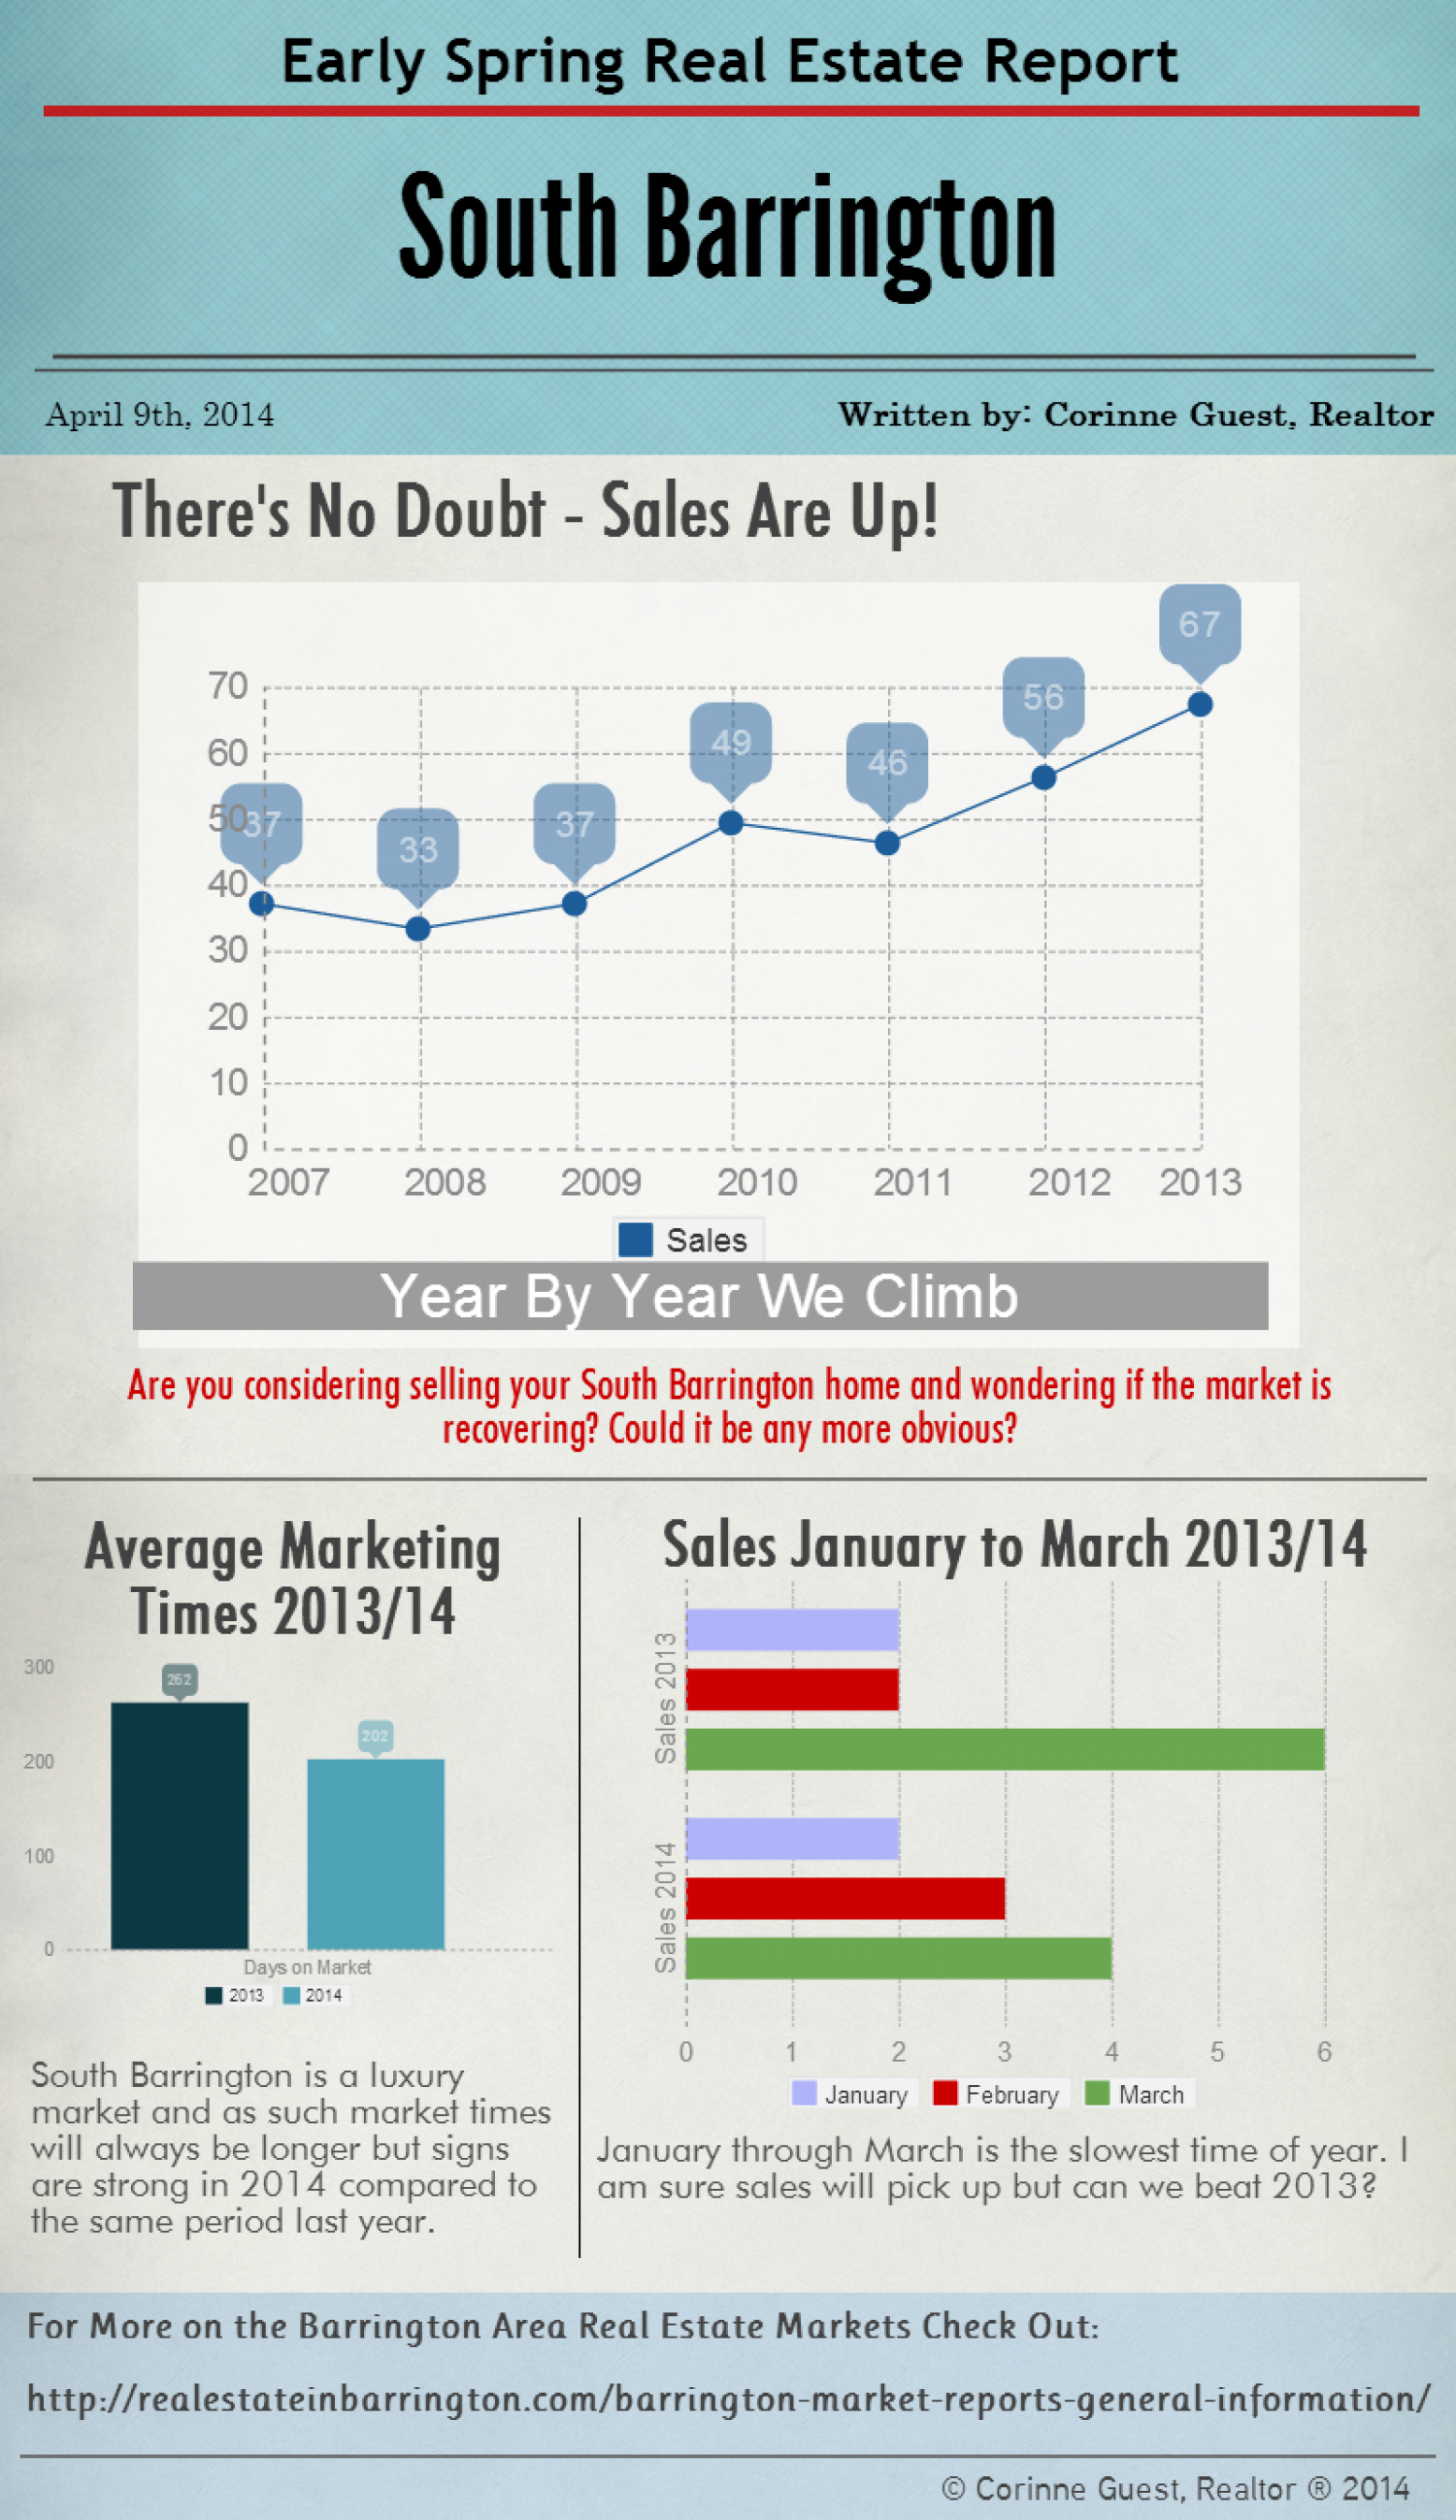 Early Spring Real Estate Report South Barrington Infographic